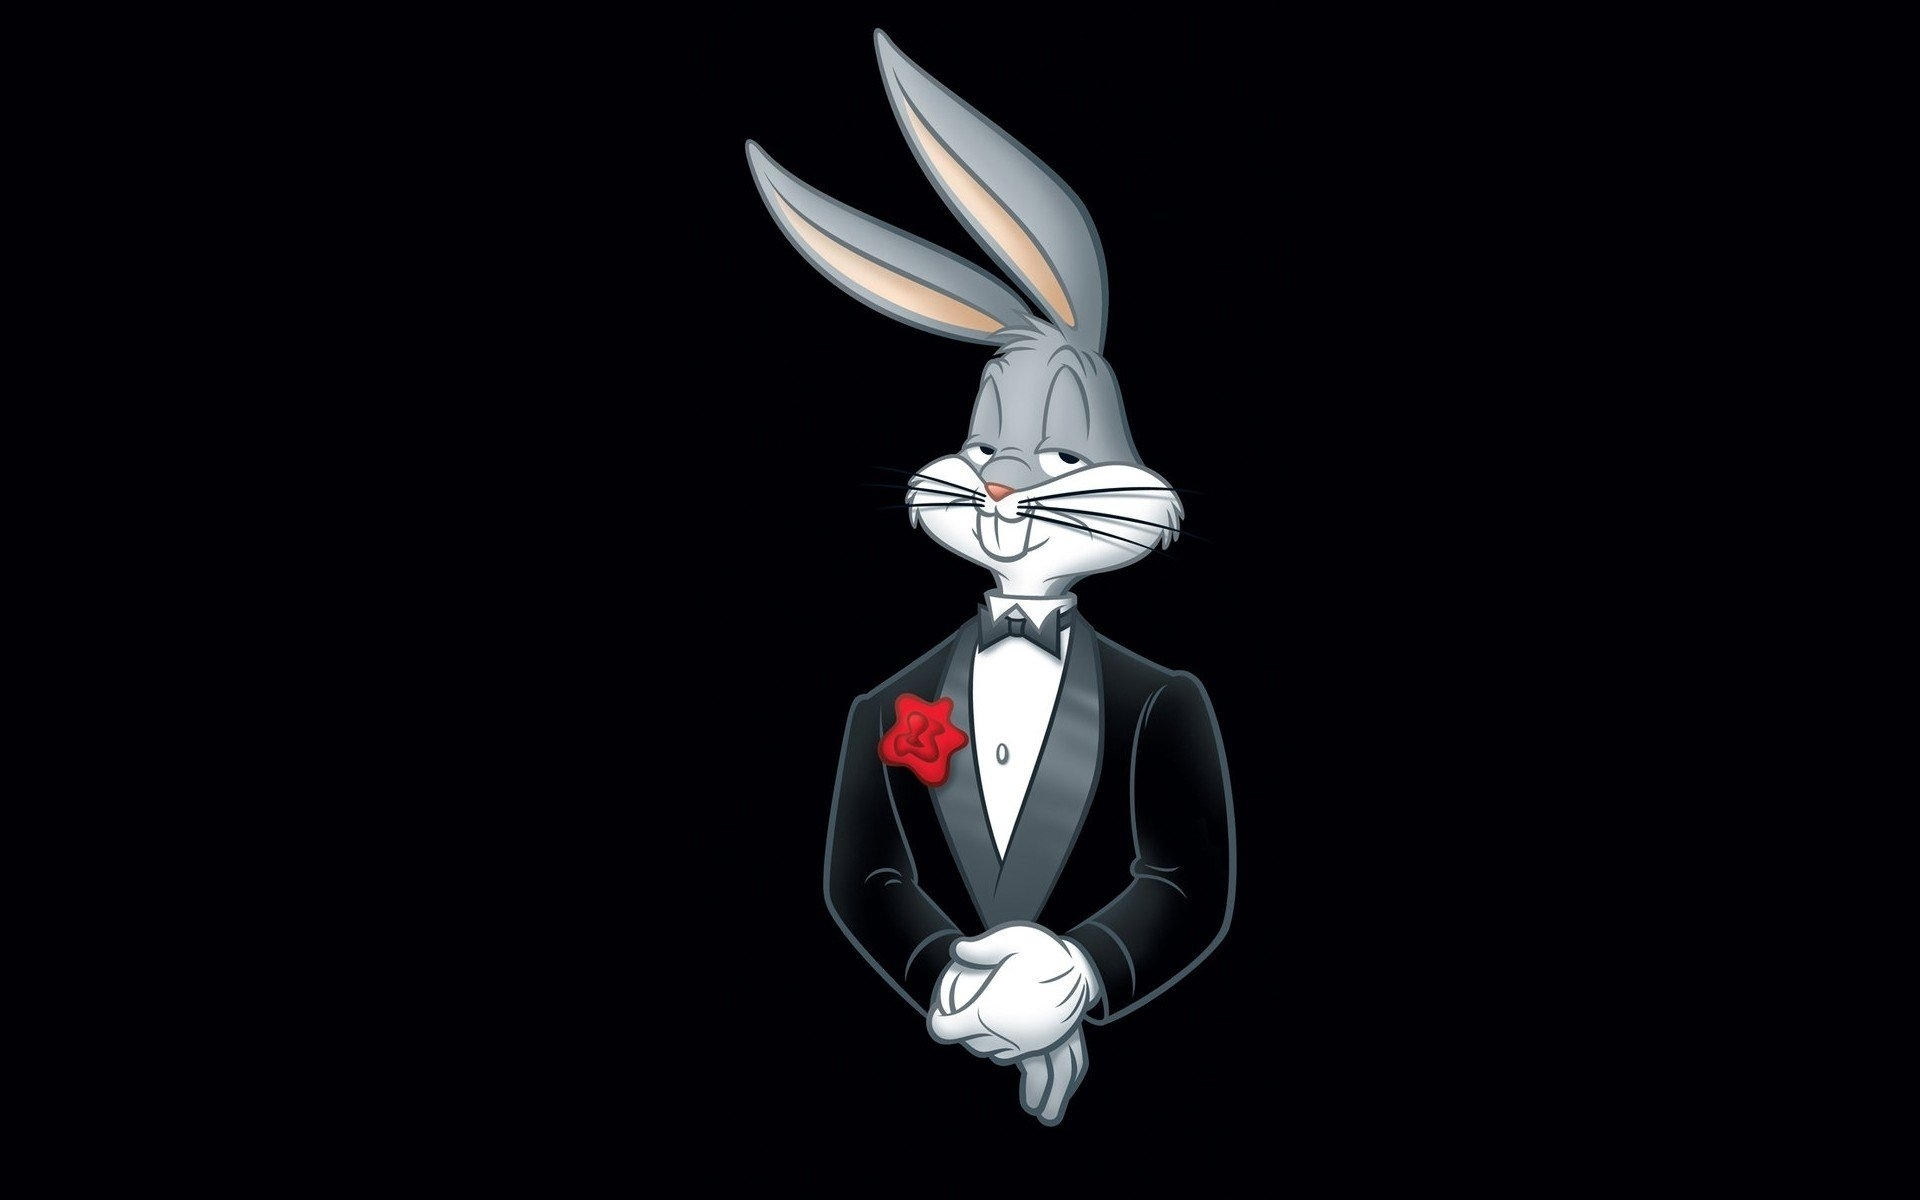 bugs bunny full hd wallpaper and background image | 1920x1200 | id